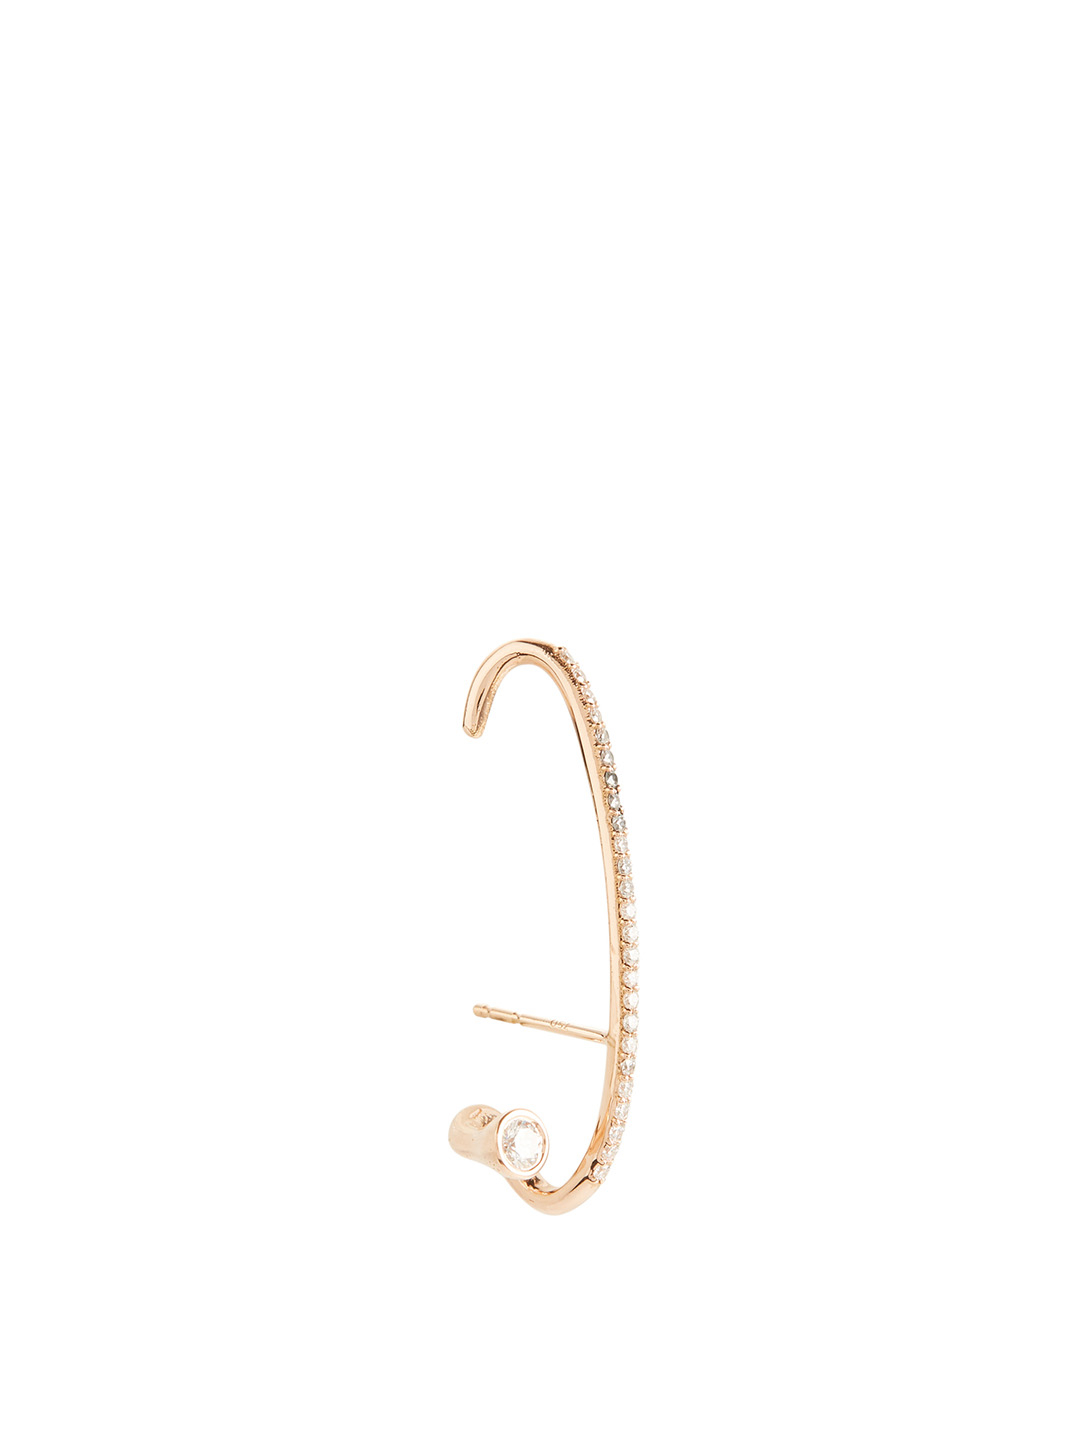 KATKIM Crescendo Flare 18K Rose Gold Right Earring With Diamonds Women's Metallic